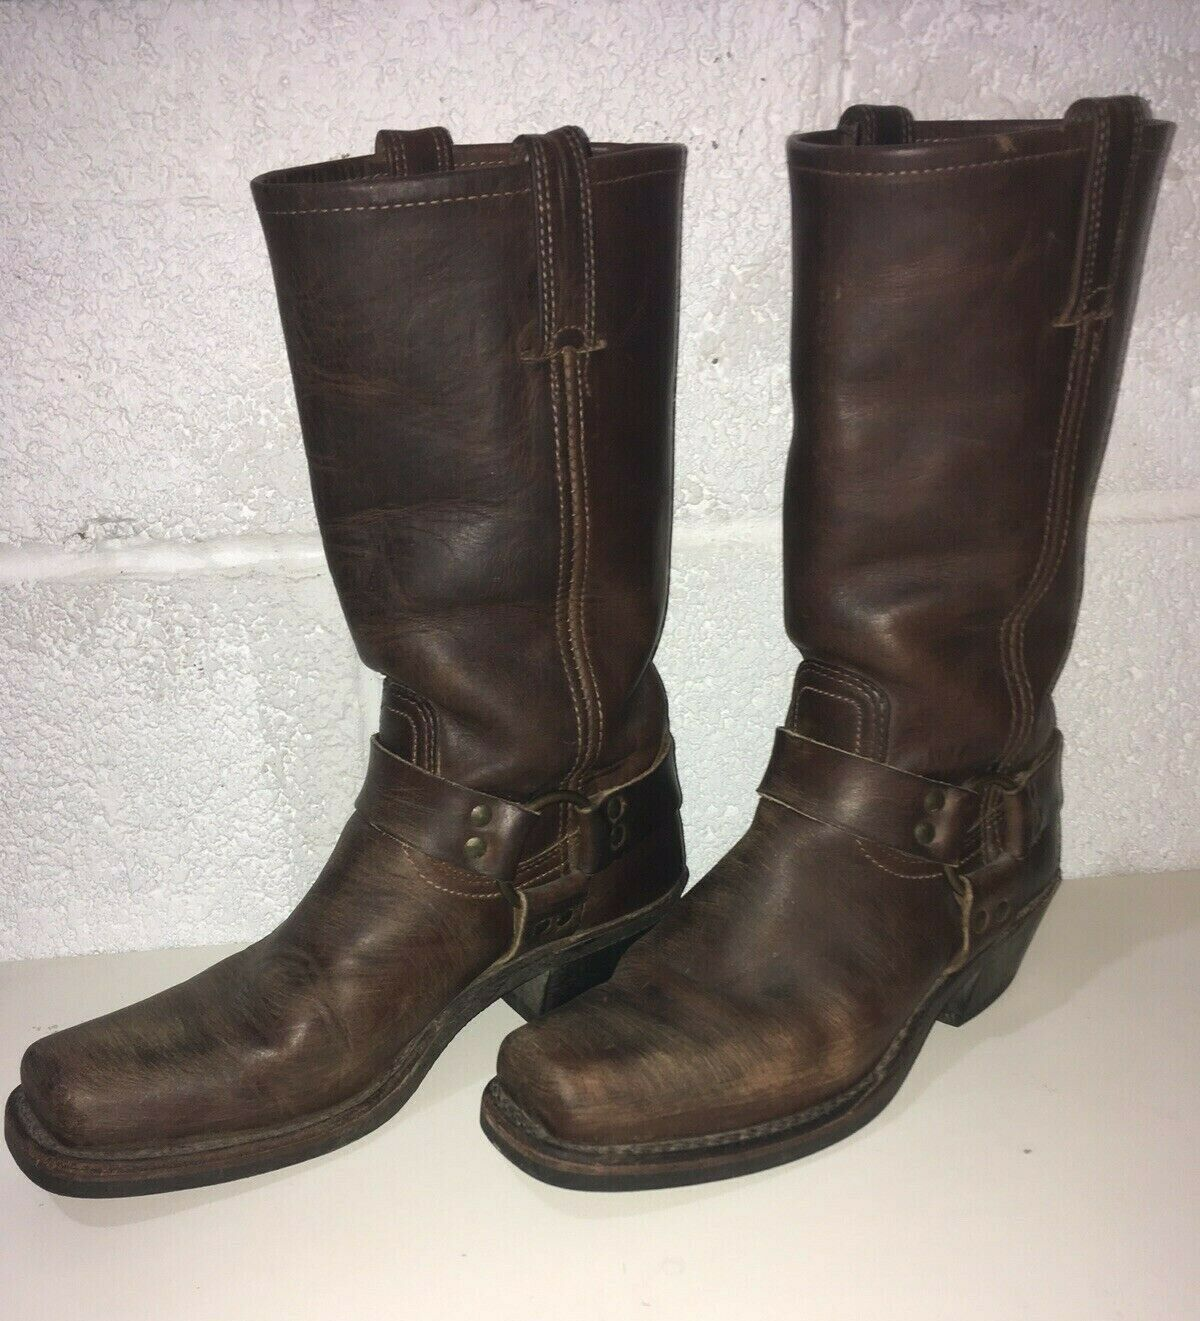 FRYE 77300 12R Harness Dimensione 8M Marronee Leather Mid Calf Motorcycle stivali donna's